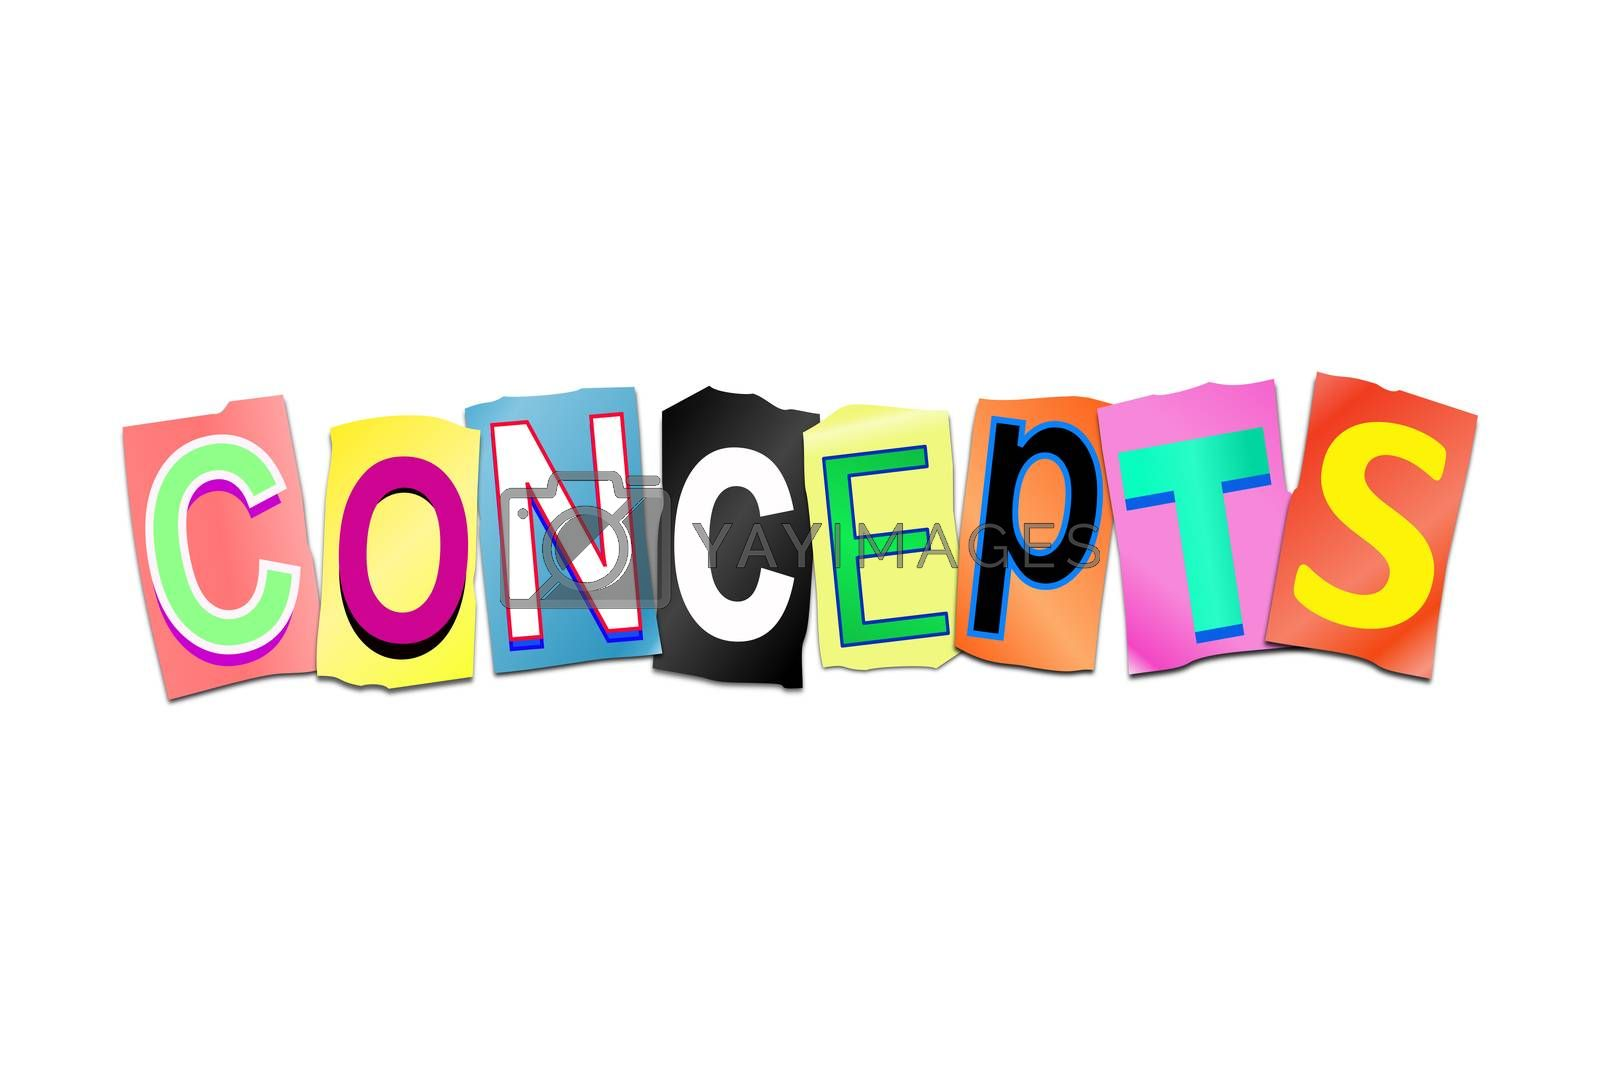 Illustration depicting a set of cut out printed letters arranged to form the word concept.